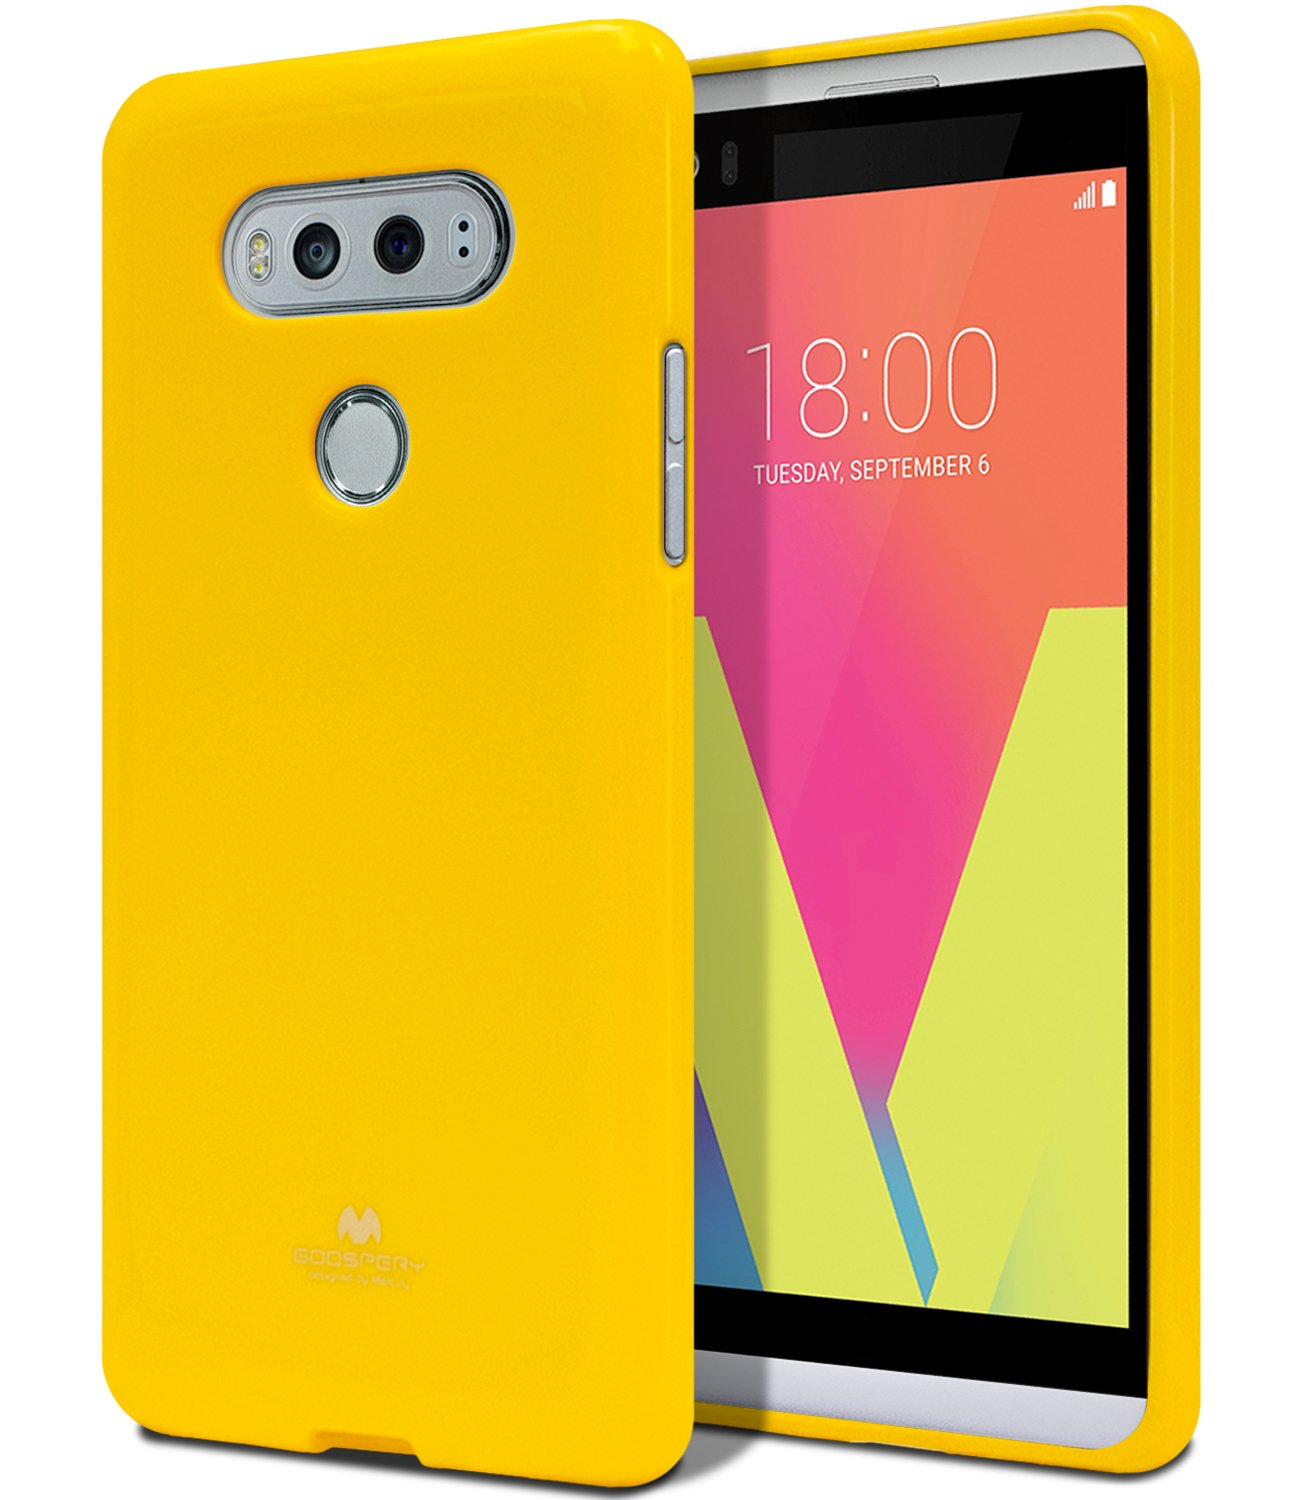 Lg V20 Case Thin Slim Goospery Flexible Iphone 8 Plus Pearl Jelly Yellow Perfect Fit Tpu Lightweight Shock Absorption Premium Bumper Cover